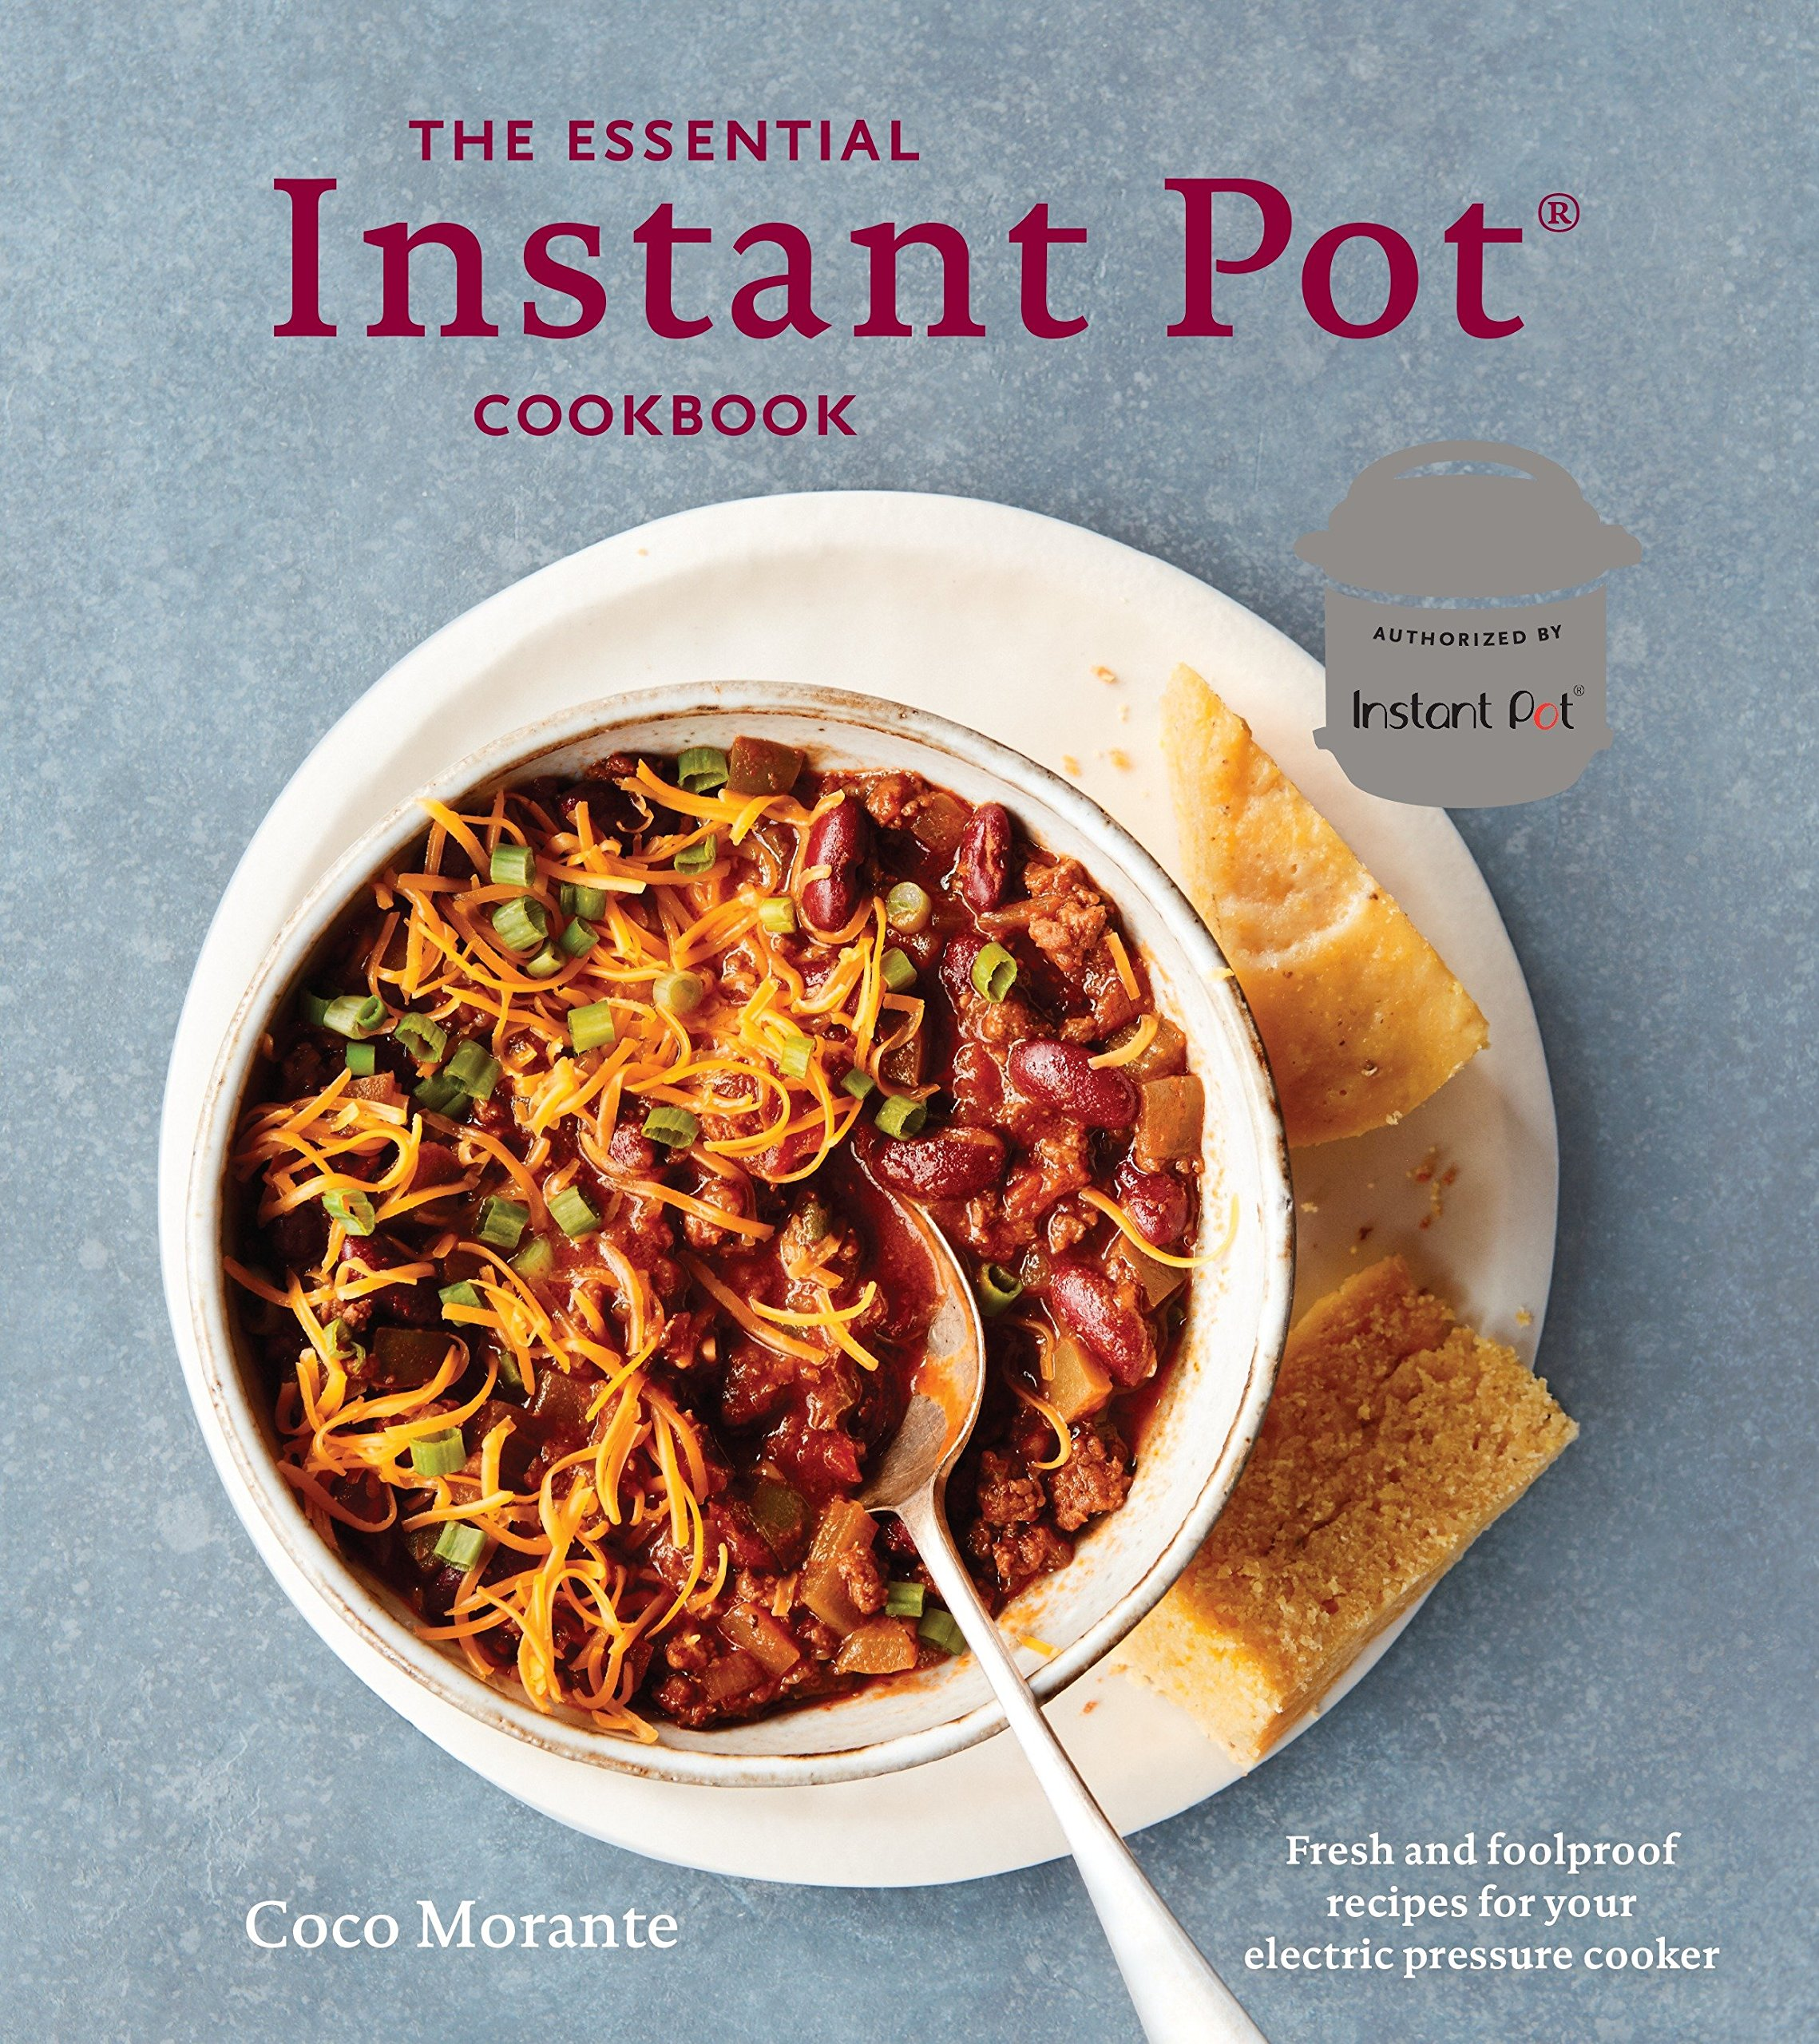 Download The Essential Instant Pot Cookbook: Fresh And Foolproof Recipes For Your Electric Pressure Cooker 